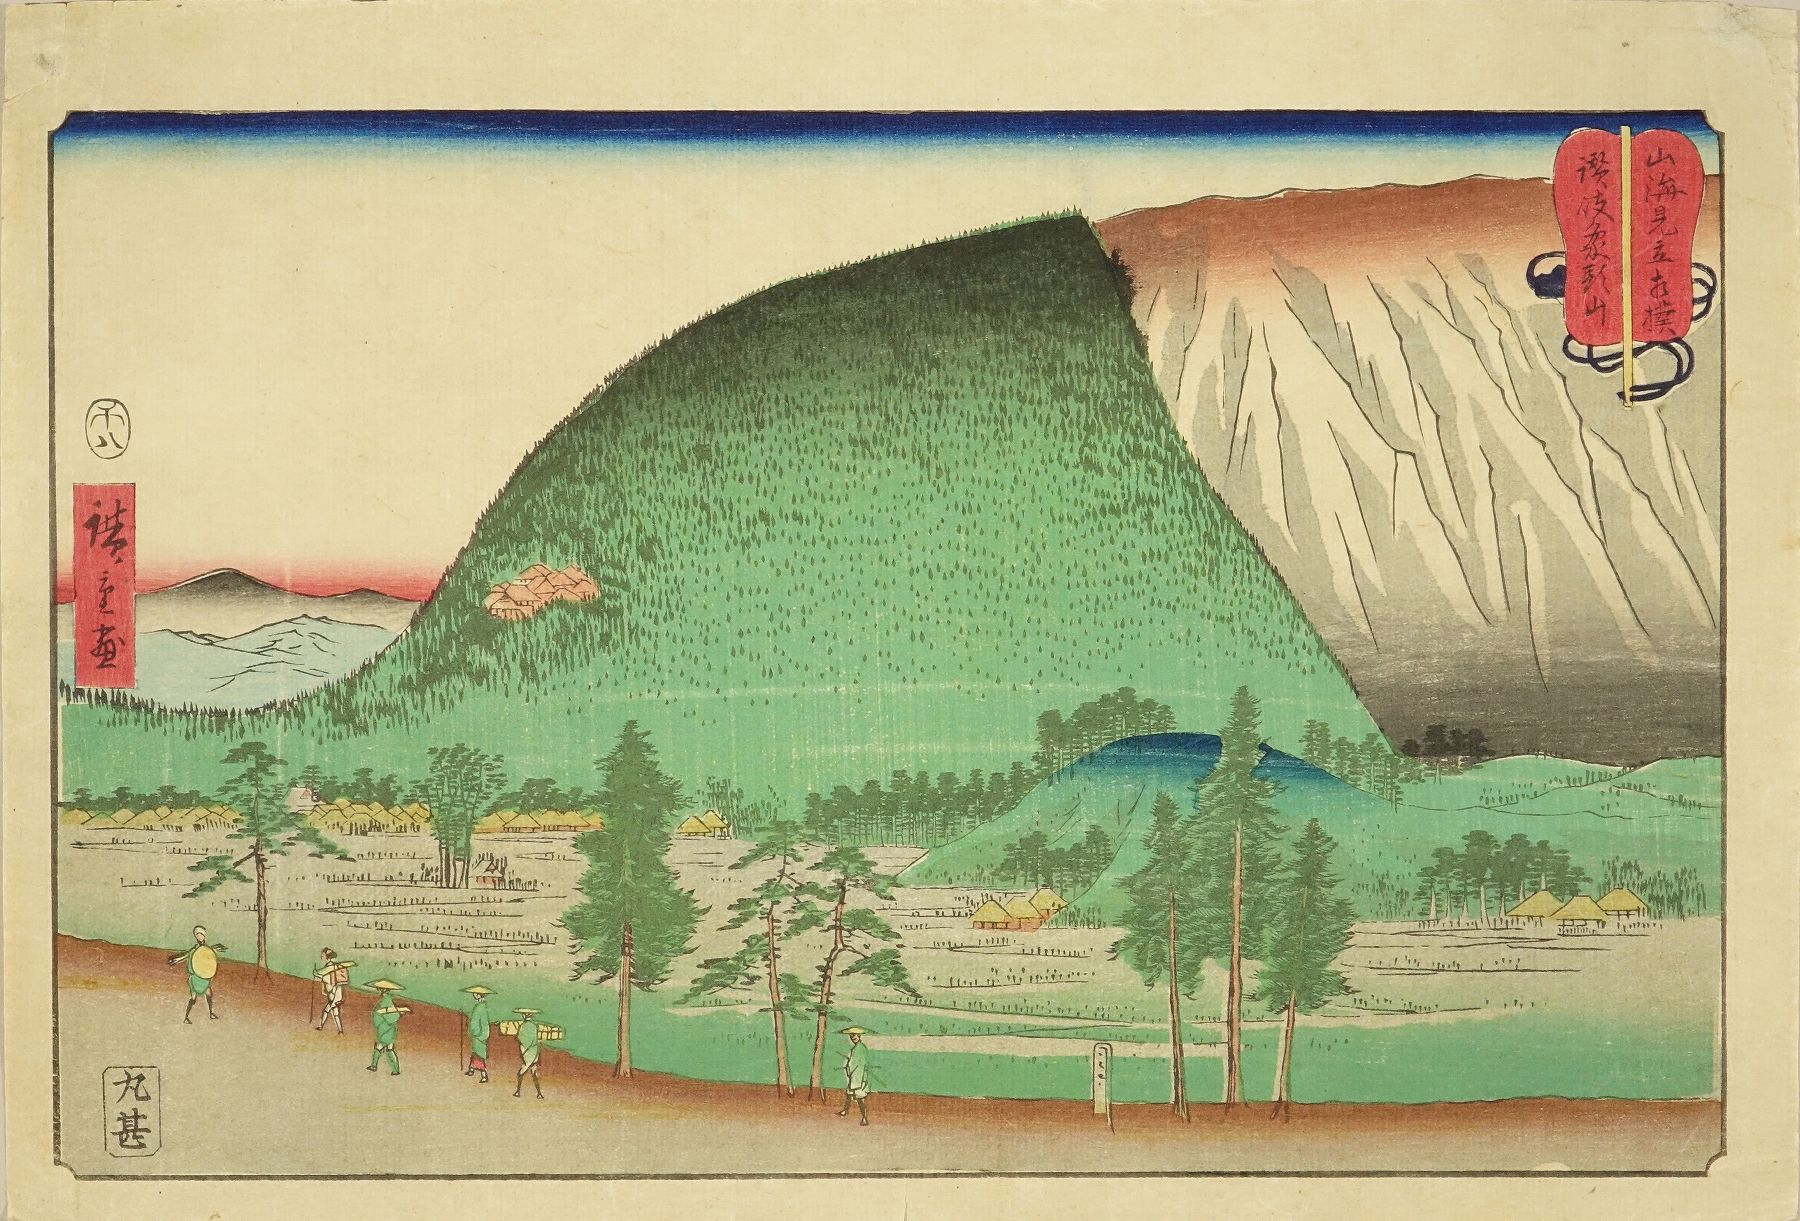 HIROSHIGE Zozusan (Elephant head mountain), Sanuki Province, from <i>Sankai mitate zumo</i> (Parody sumo match of mountain and sea)